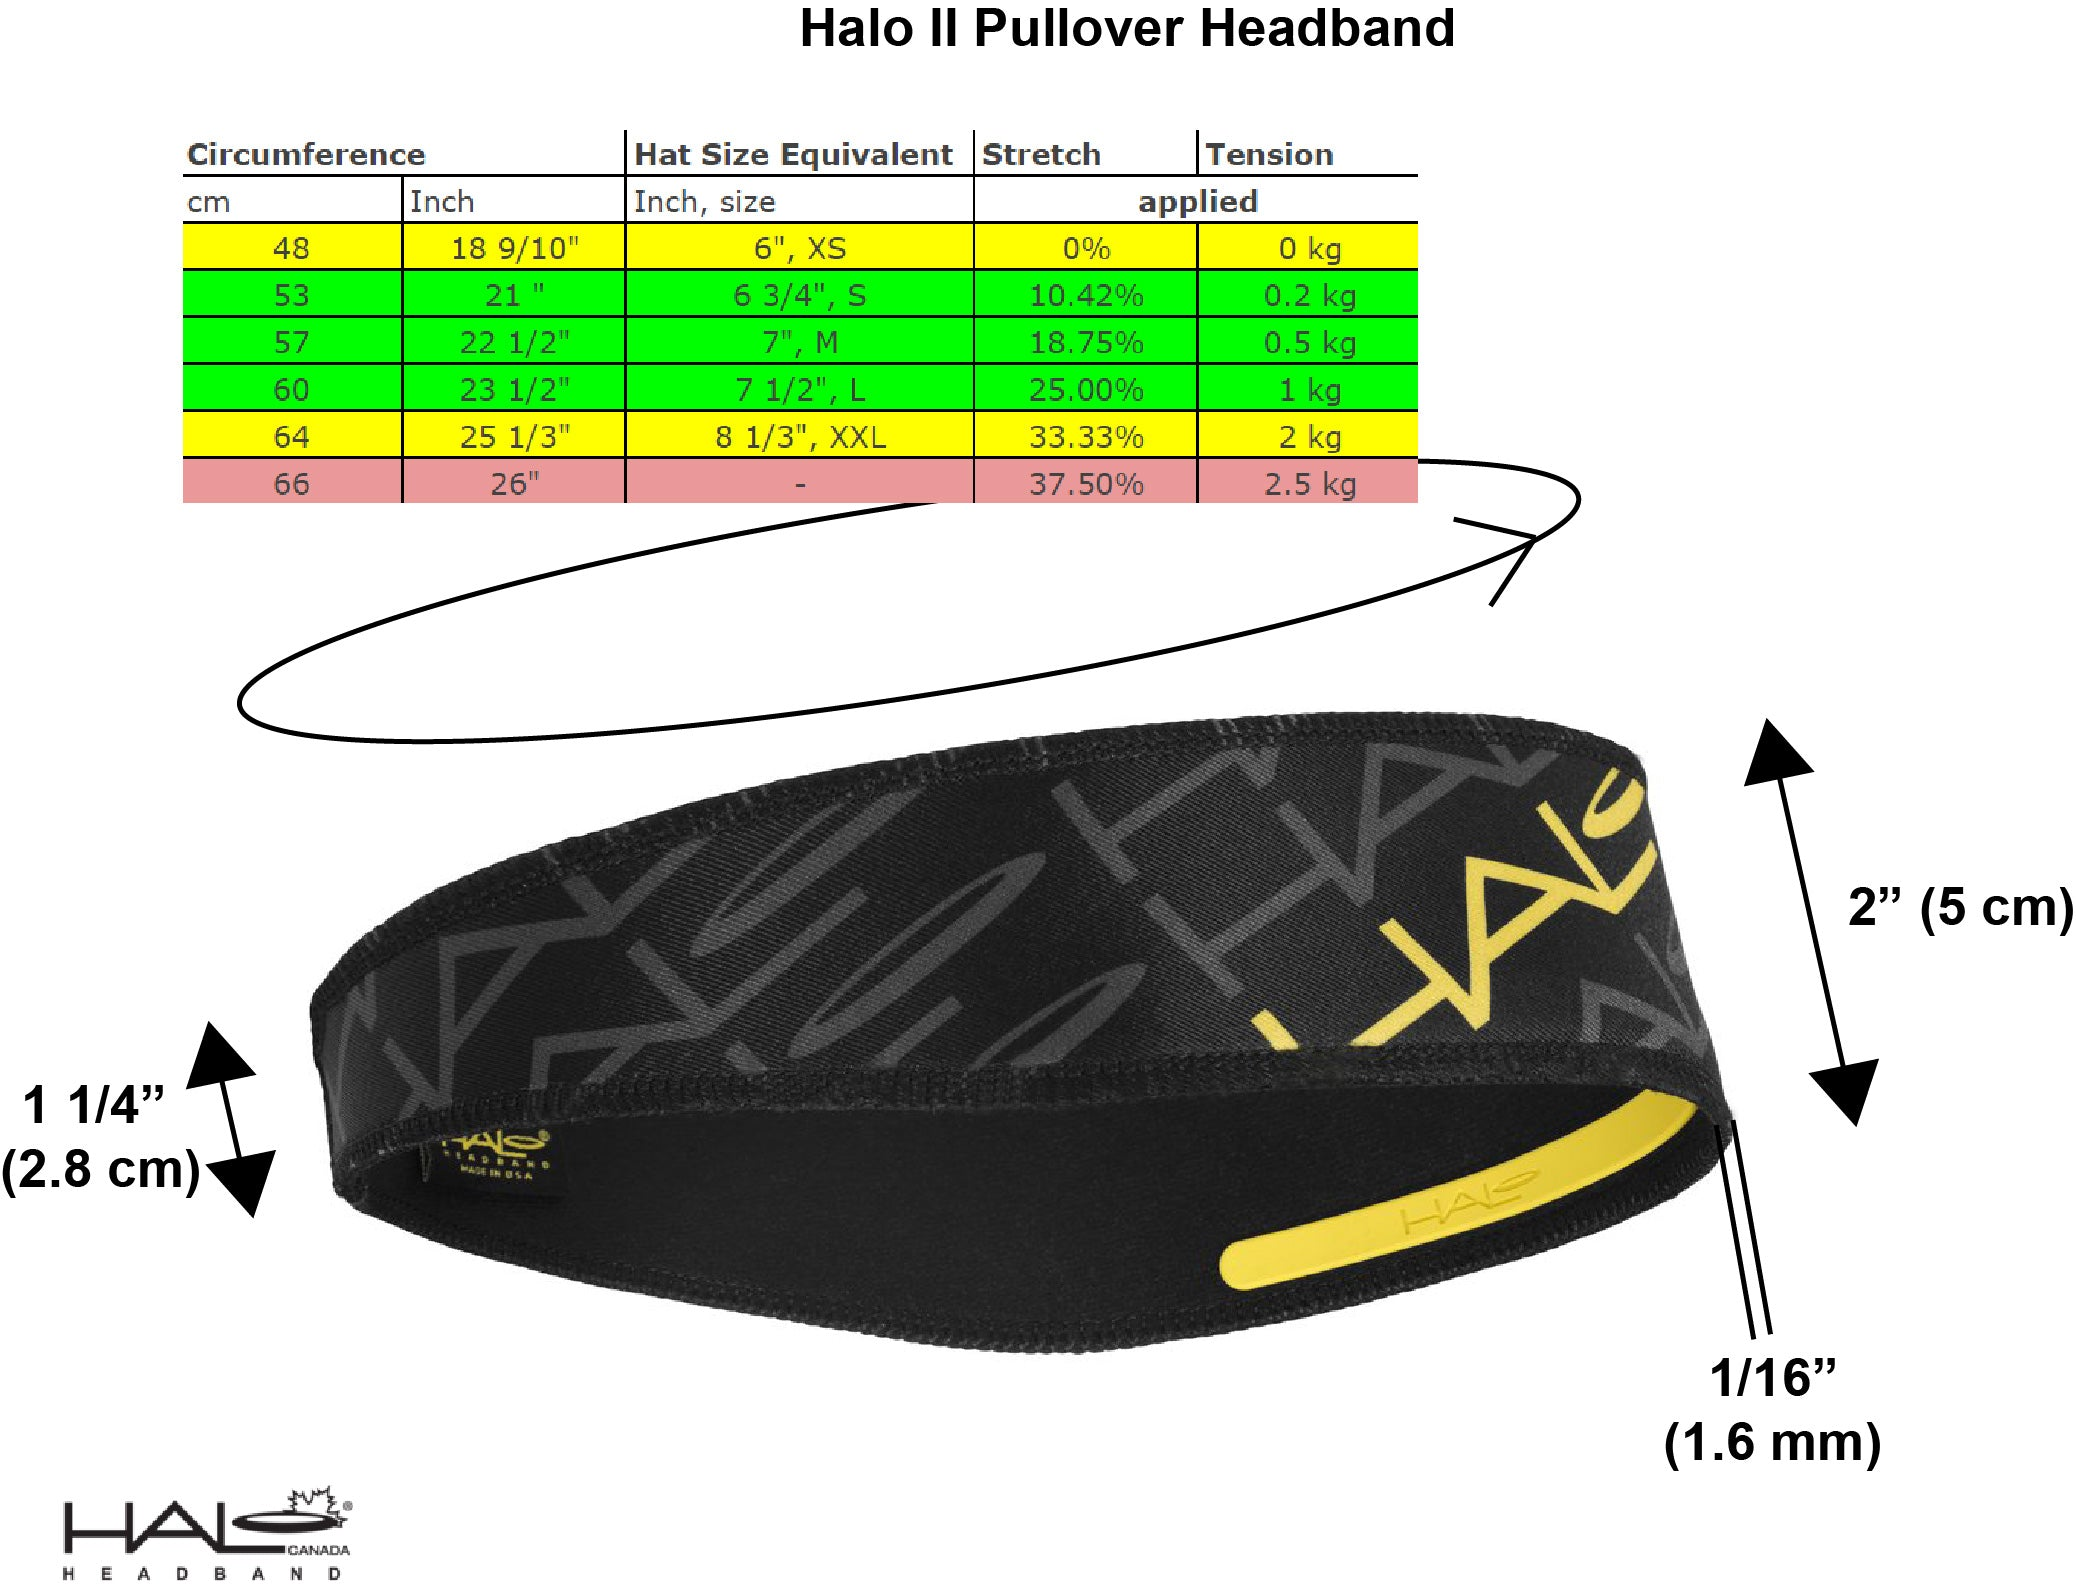 Halo II pullover sizing guide